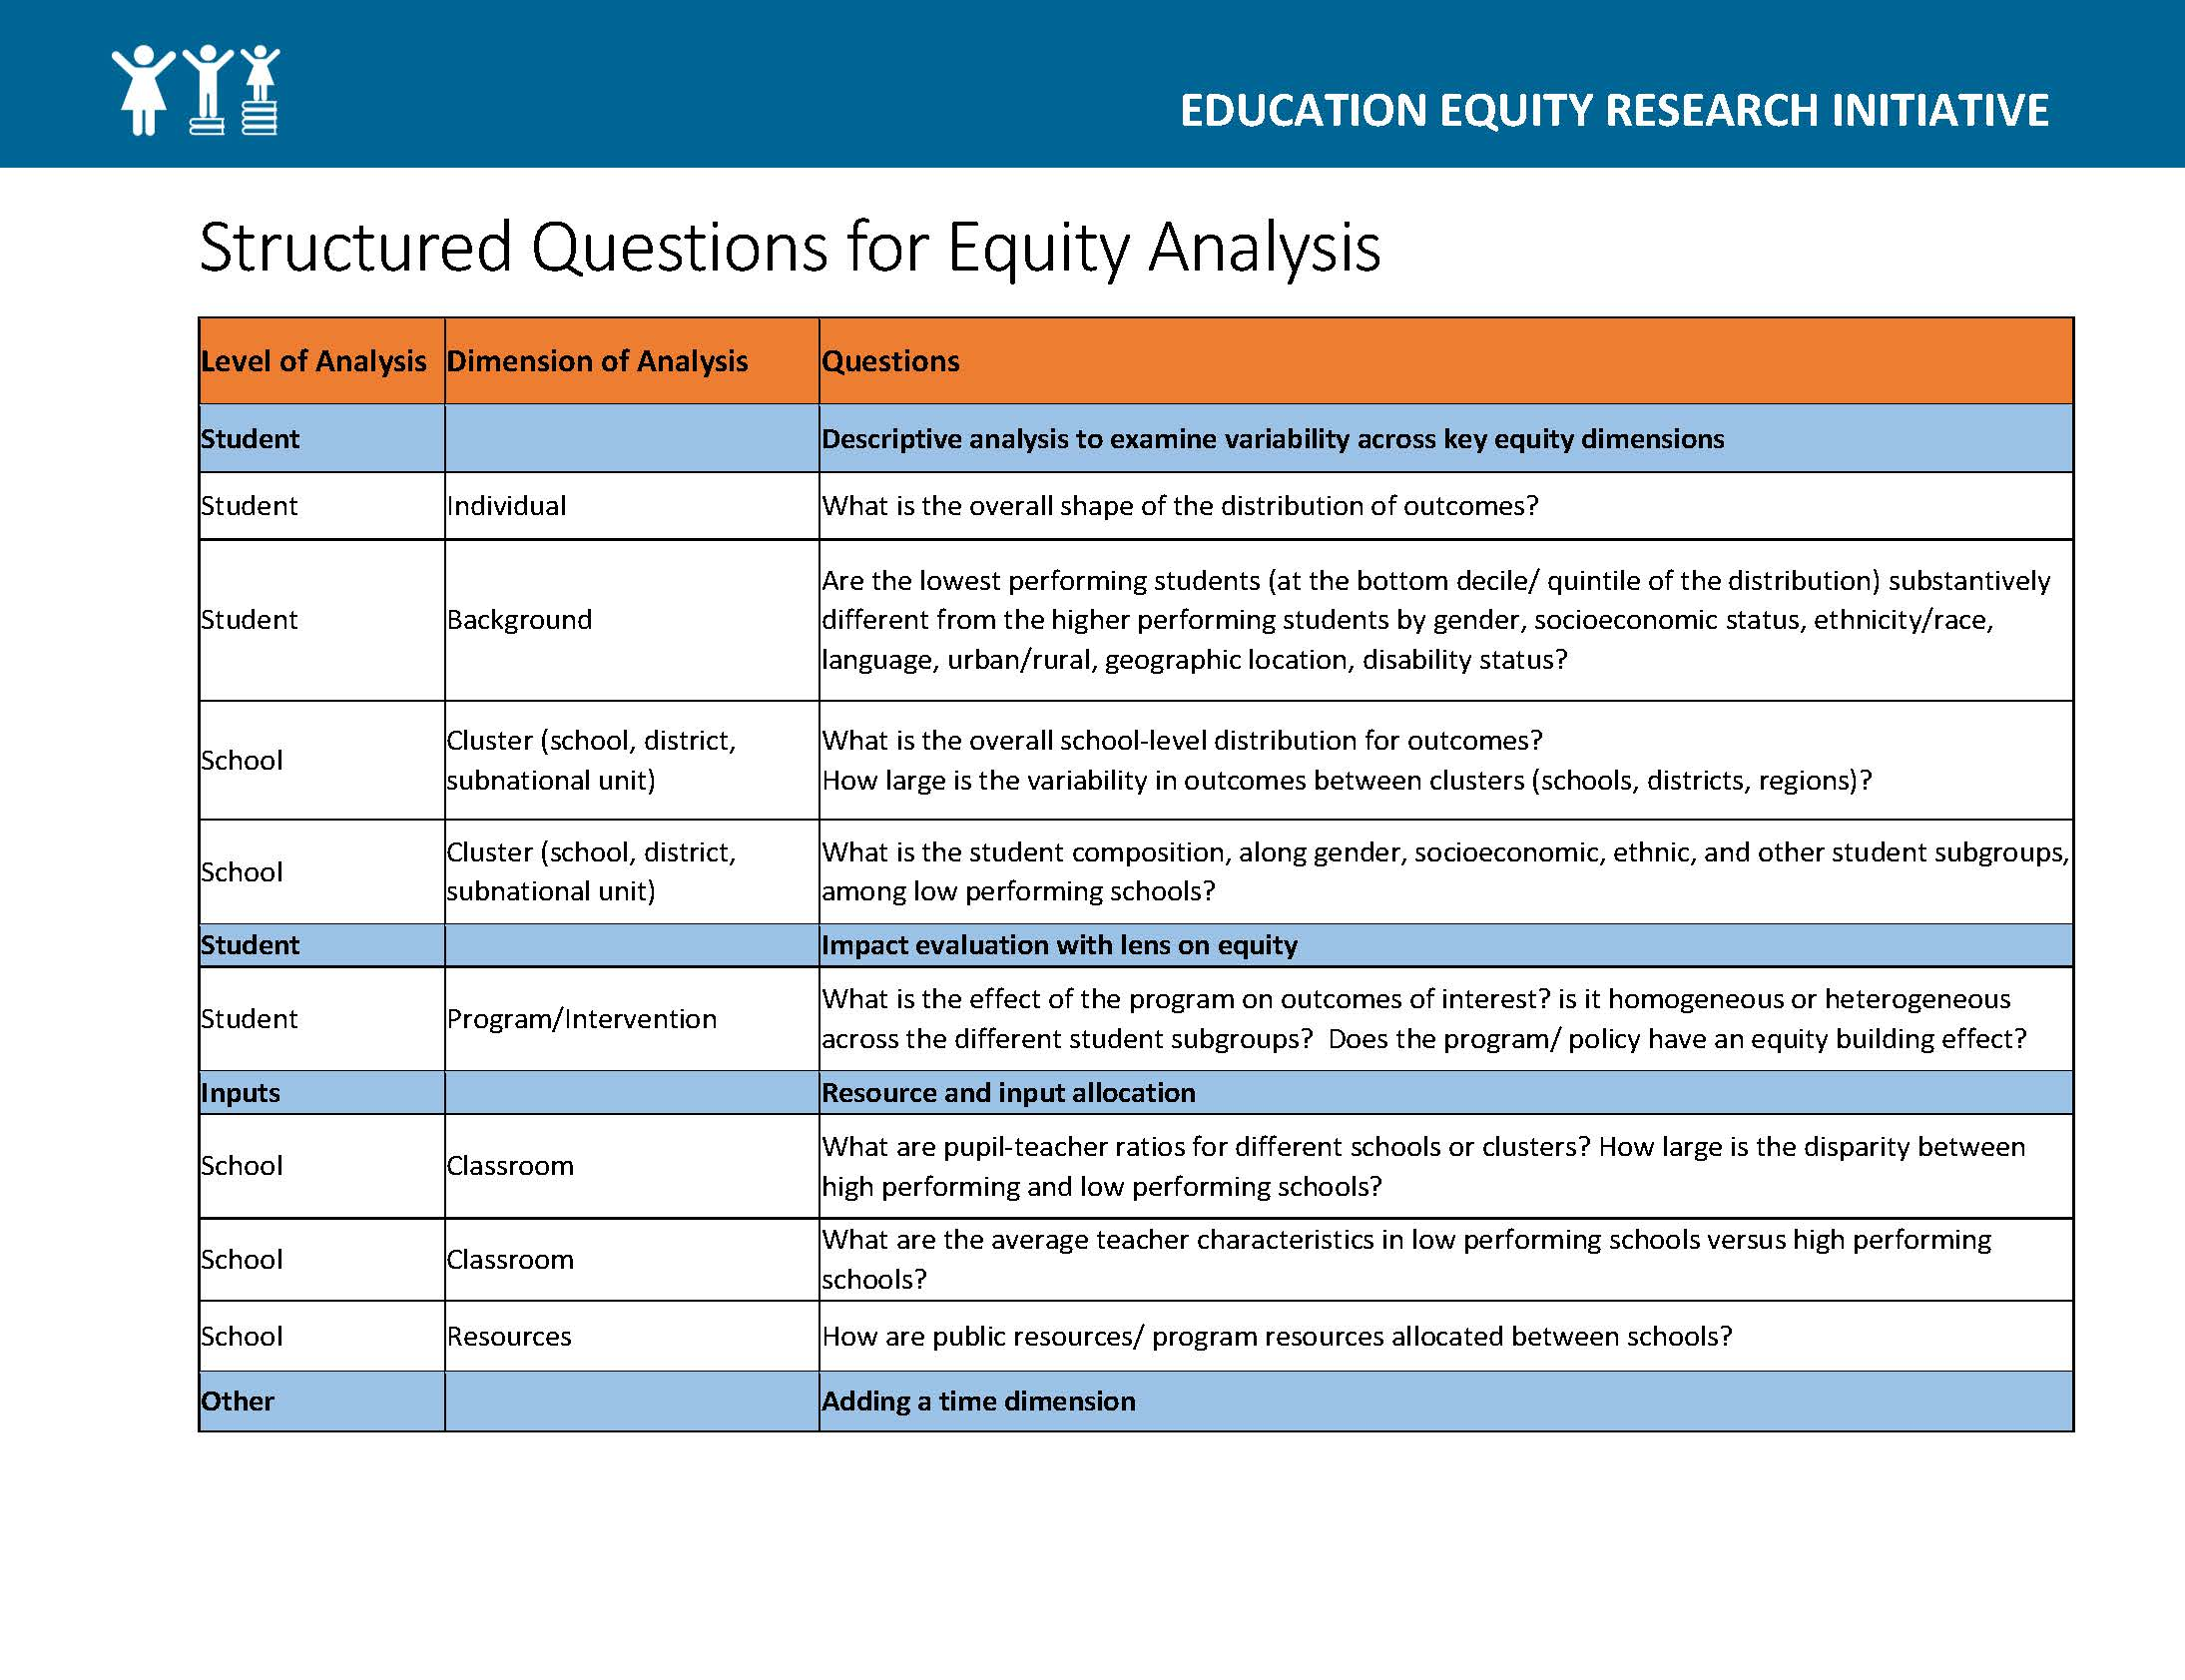 Structured Questions for Equity Analysis — Education Equity